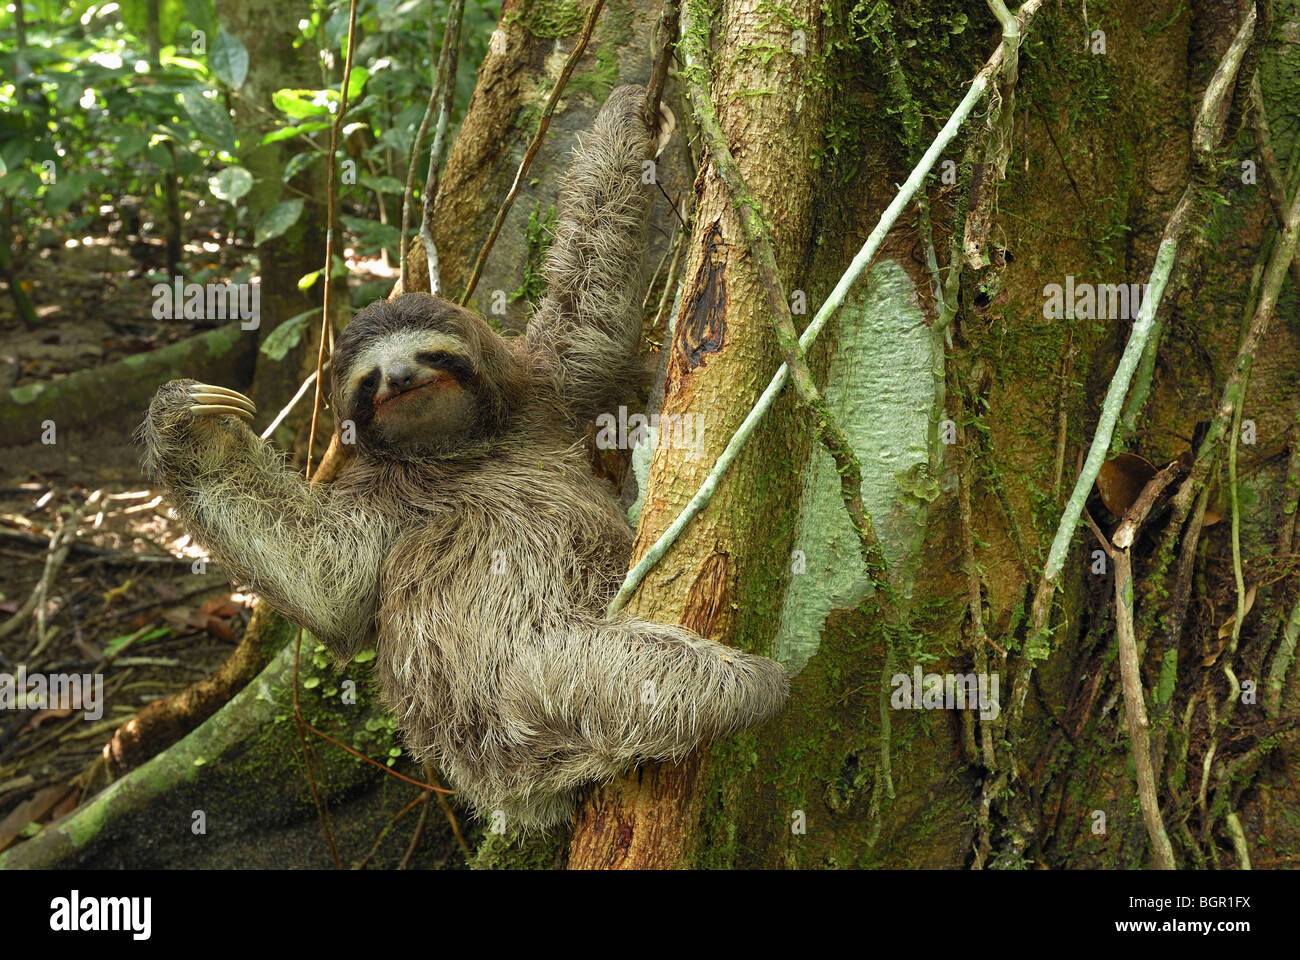 Brown-throated trois-toed Sloth (Bradypus variegatus), adulte, parc national de Cahuita, Costa Rica Banque D'Images